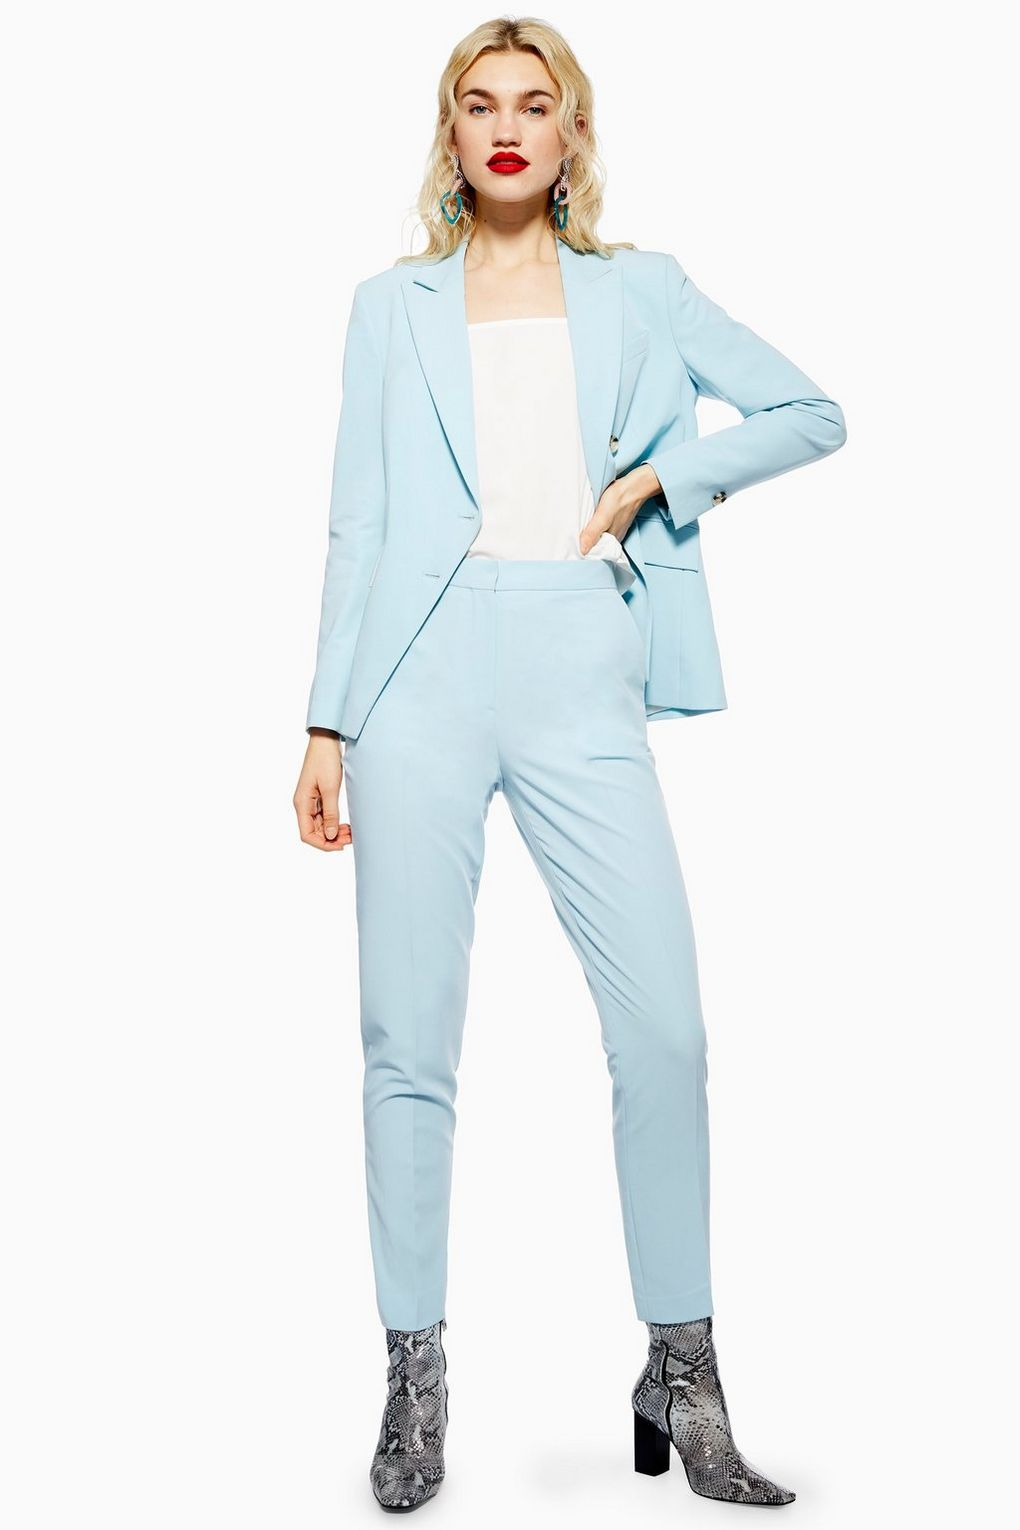 7 Suit Color Trends You Need To Wear To The Office This Summer